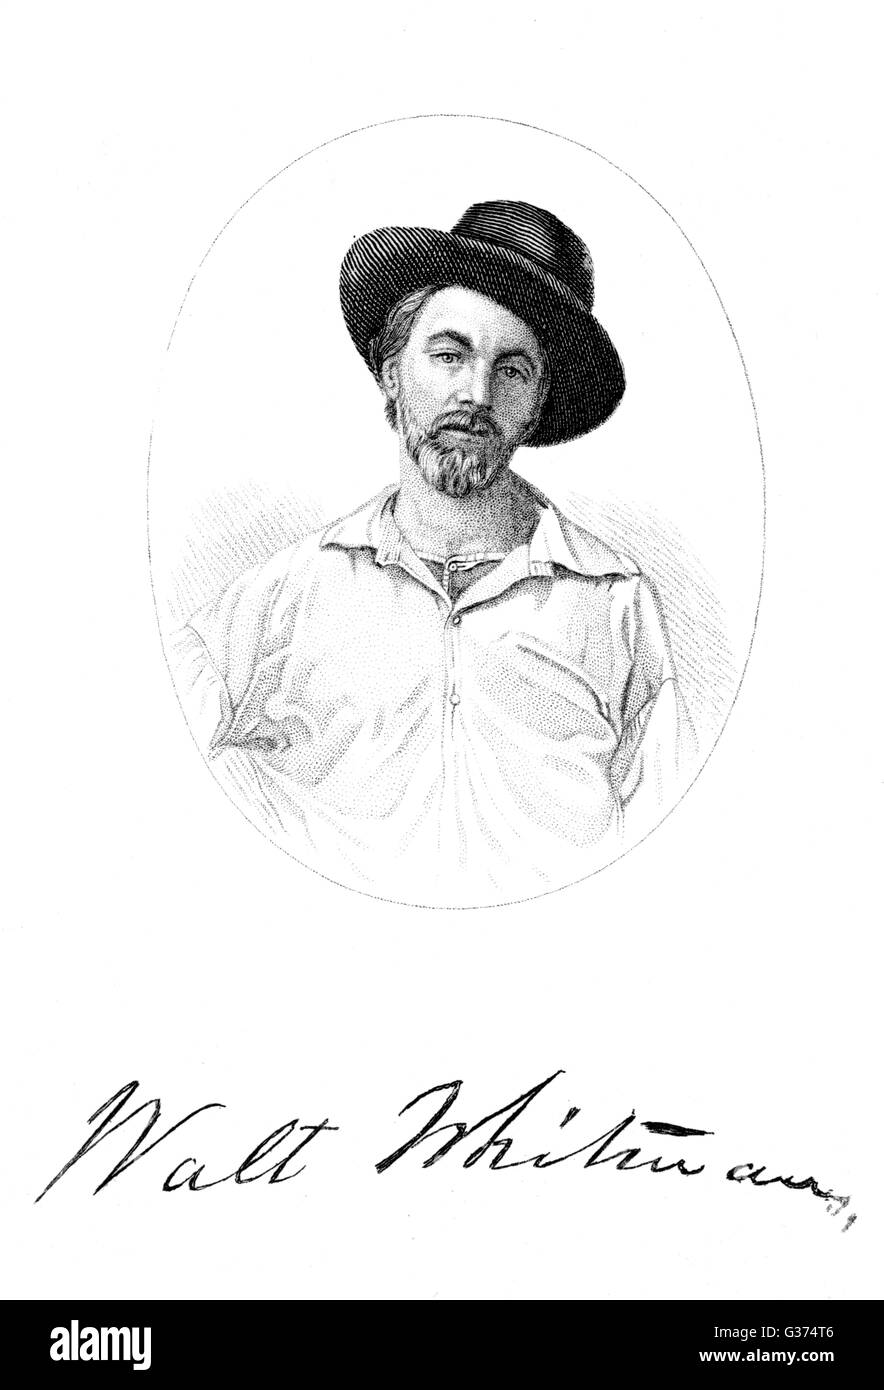 WALT WHITMAN American poet  with his autograph       Date: 1819 - 1892 - Stock Image